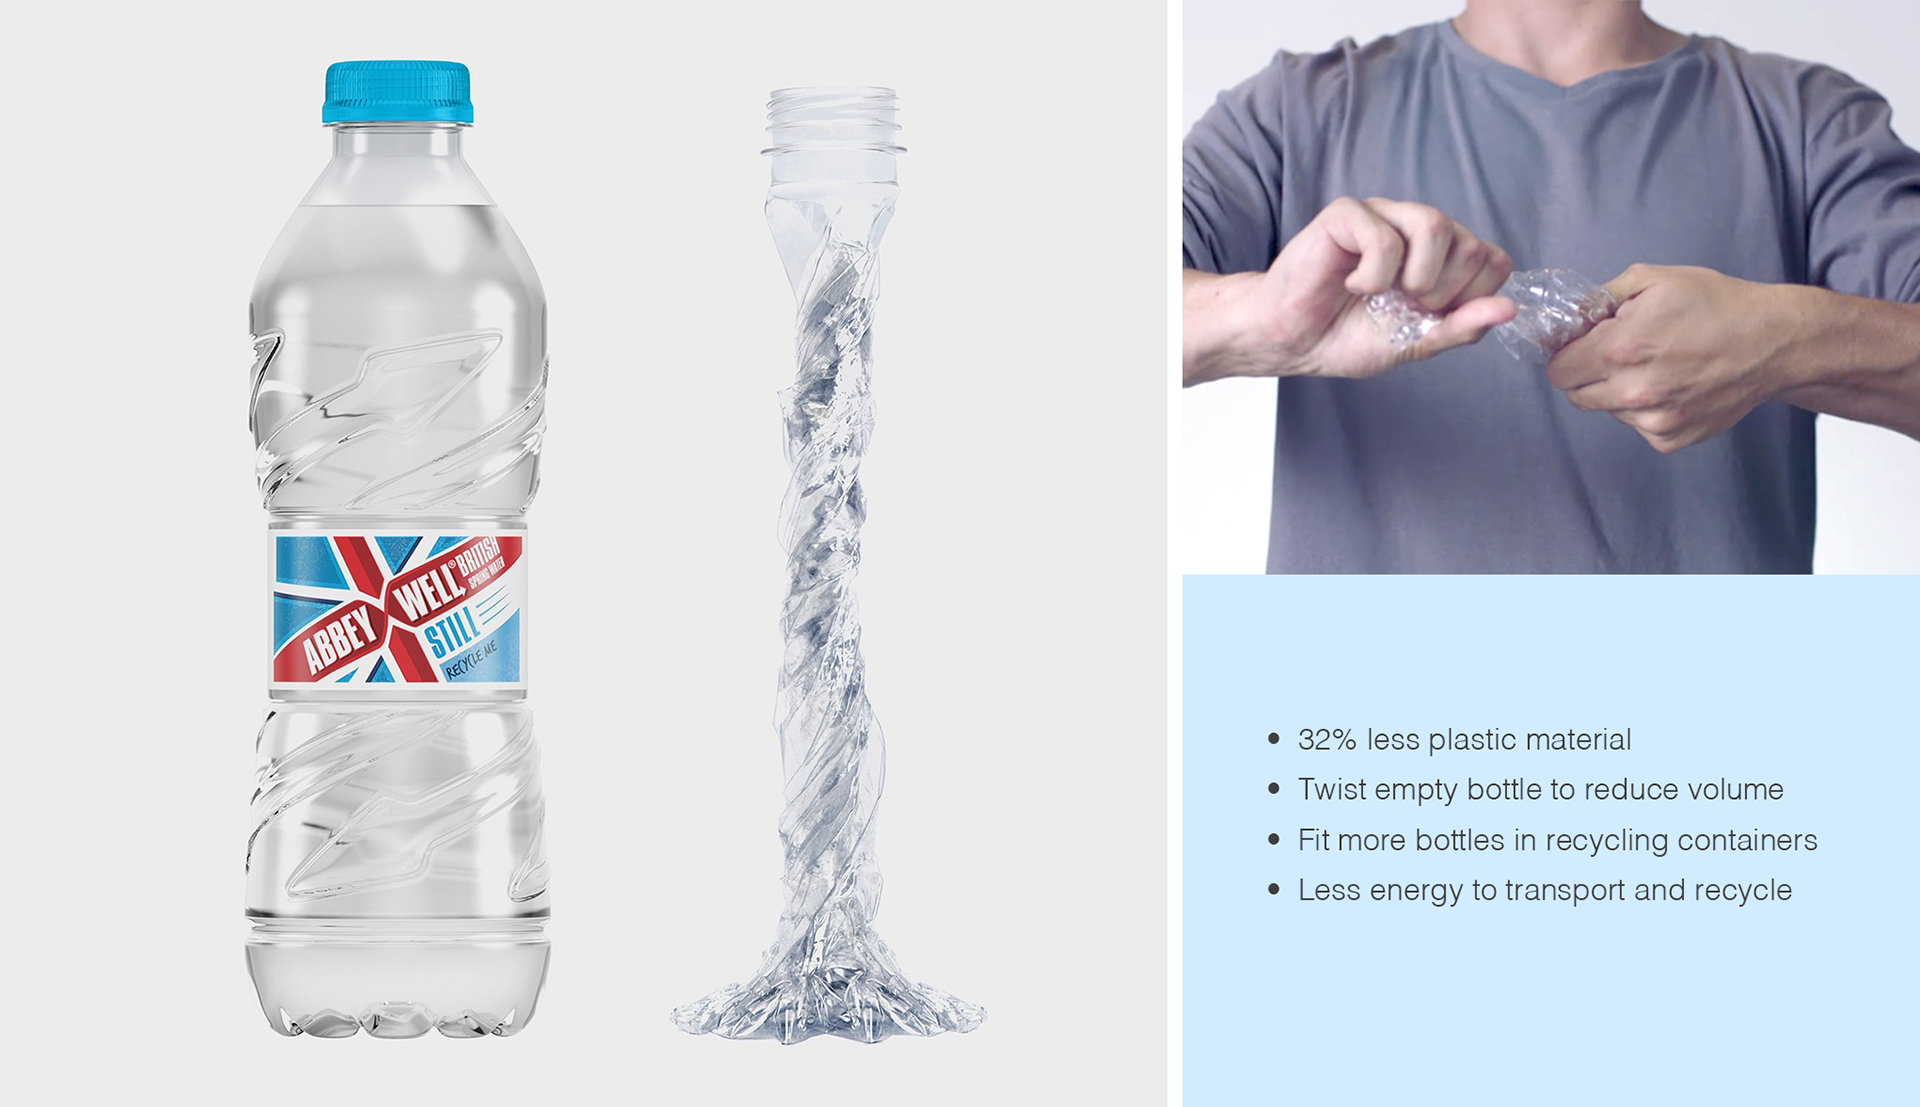 The first concept to market was Abbey Well Twist - a water bottle that cut out 1/3 of plastic and used far less energy in transport and recycling, because consumers twisted the bottle after use to reduce its volume. We ran design sprints to detail this design, for example adding arrow details to the bottle that made the twist feature clear, whilst doubling up as ribs for structural strength. The bottle launched in 2016